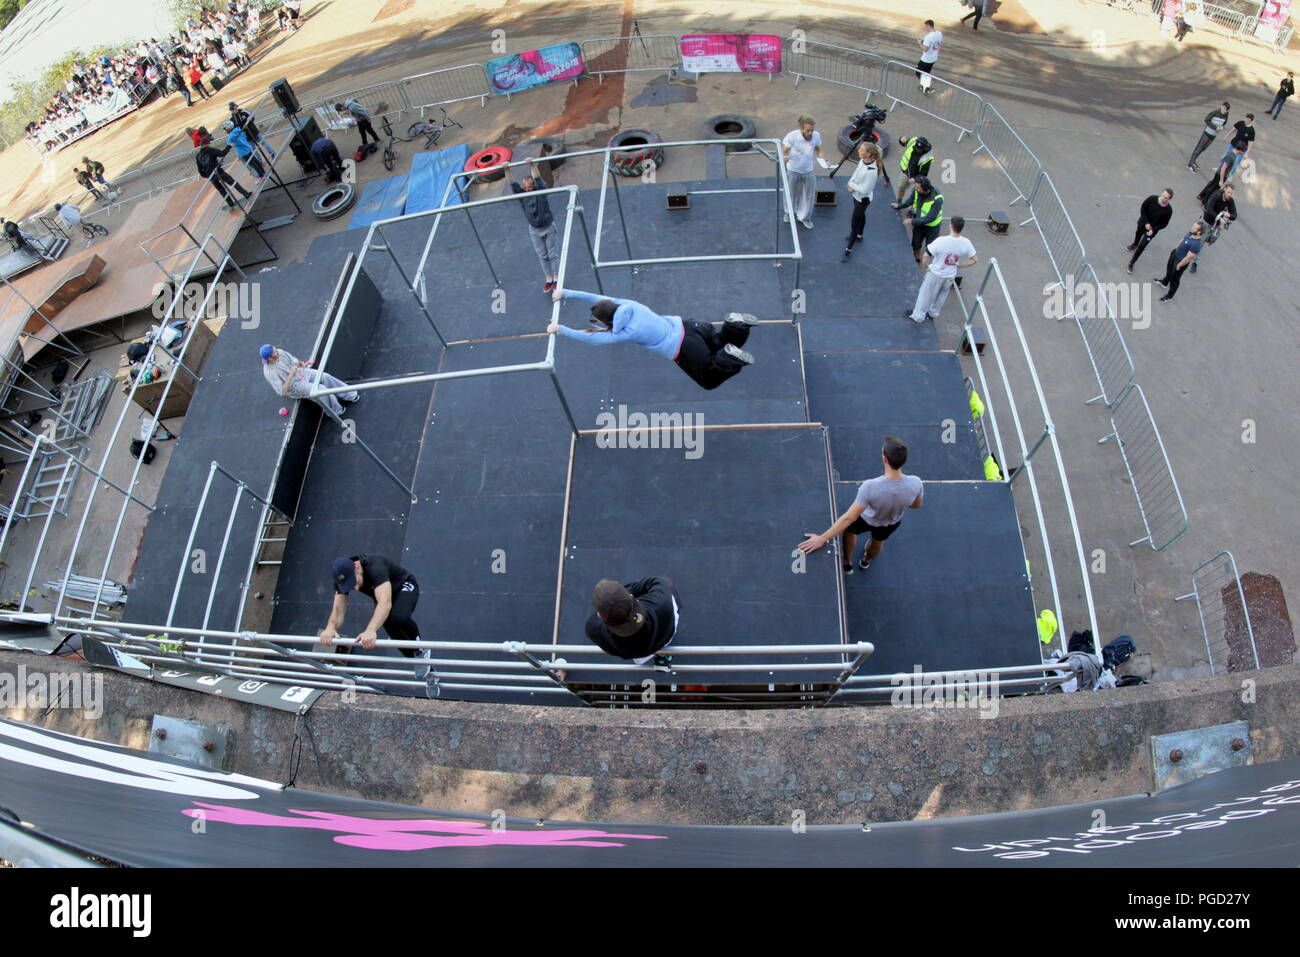 Glasgow, Scotland, UK. 25th  August, 2018. UK Weather: Brighter weather sees locals come out for the Youth Urban Games at Rotterdam Wharf speirs wharf on the forth and Clyde canal for Parkour, bmx biking  and skateboarding. Gerard Ferry/Alamy news Credit: gerard ferry/Alamy Live News Stock Photo